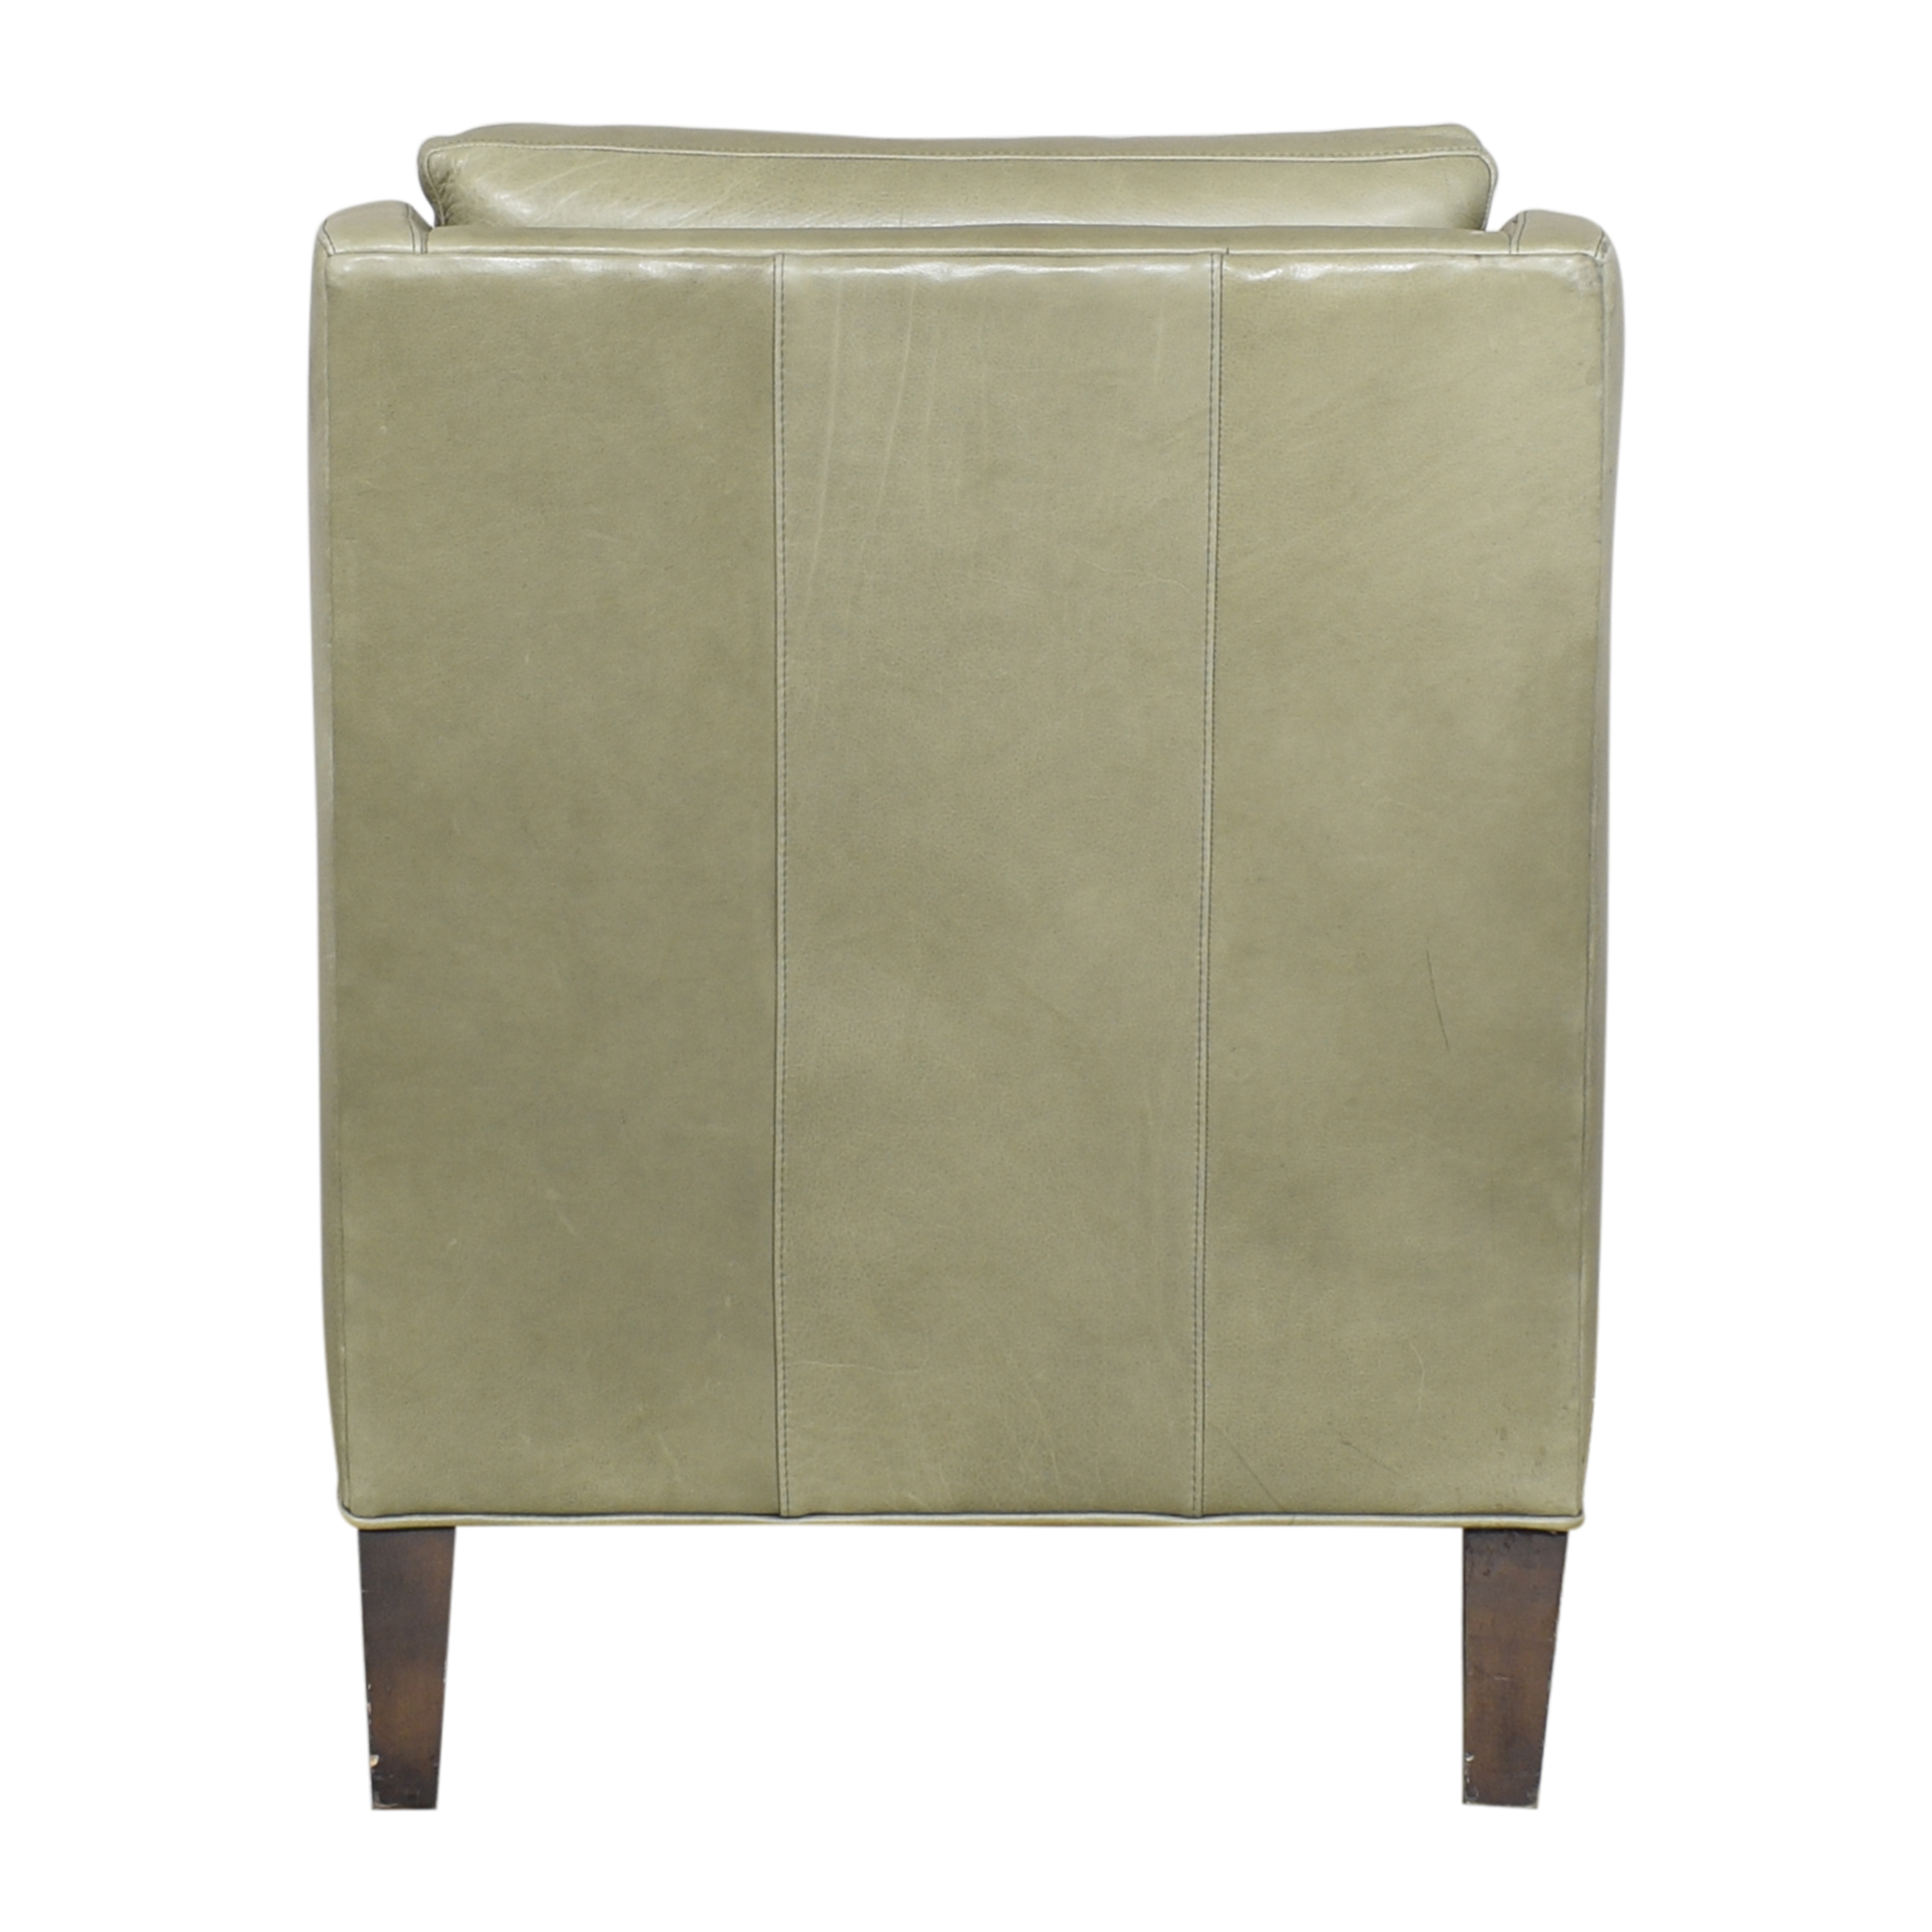 buy Room & Board Abbott Accent Chair Room & Board Chairs